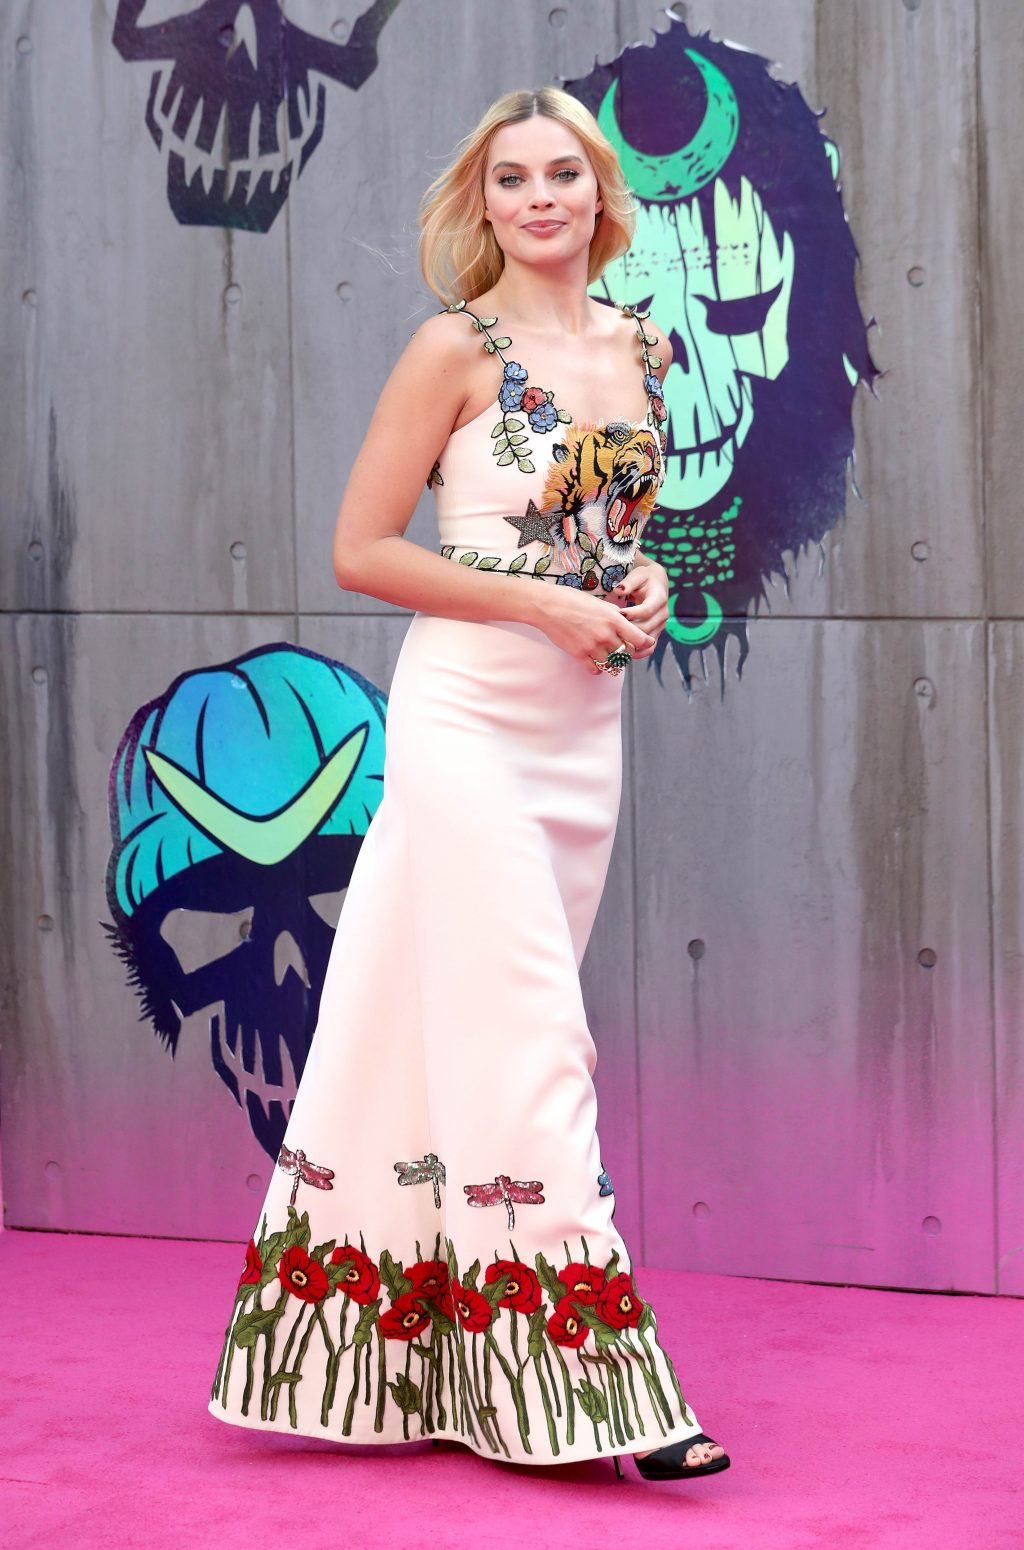 A Roundup of Margot Robbie's Best Red-Carpet Moments to Date